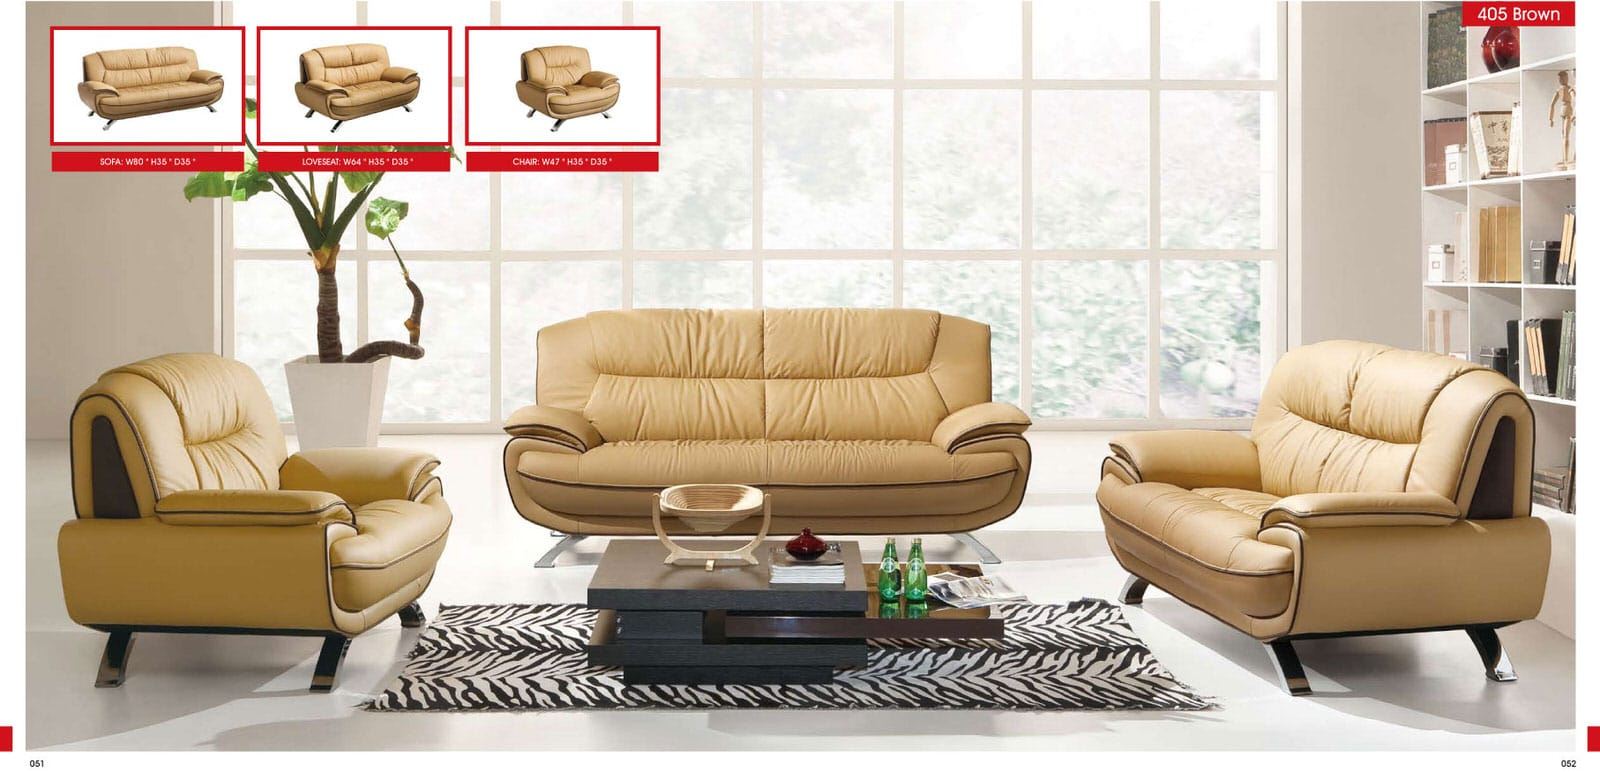 405 brown leather sofa set by esf for Living room modern furniture